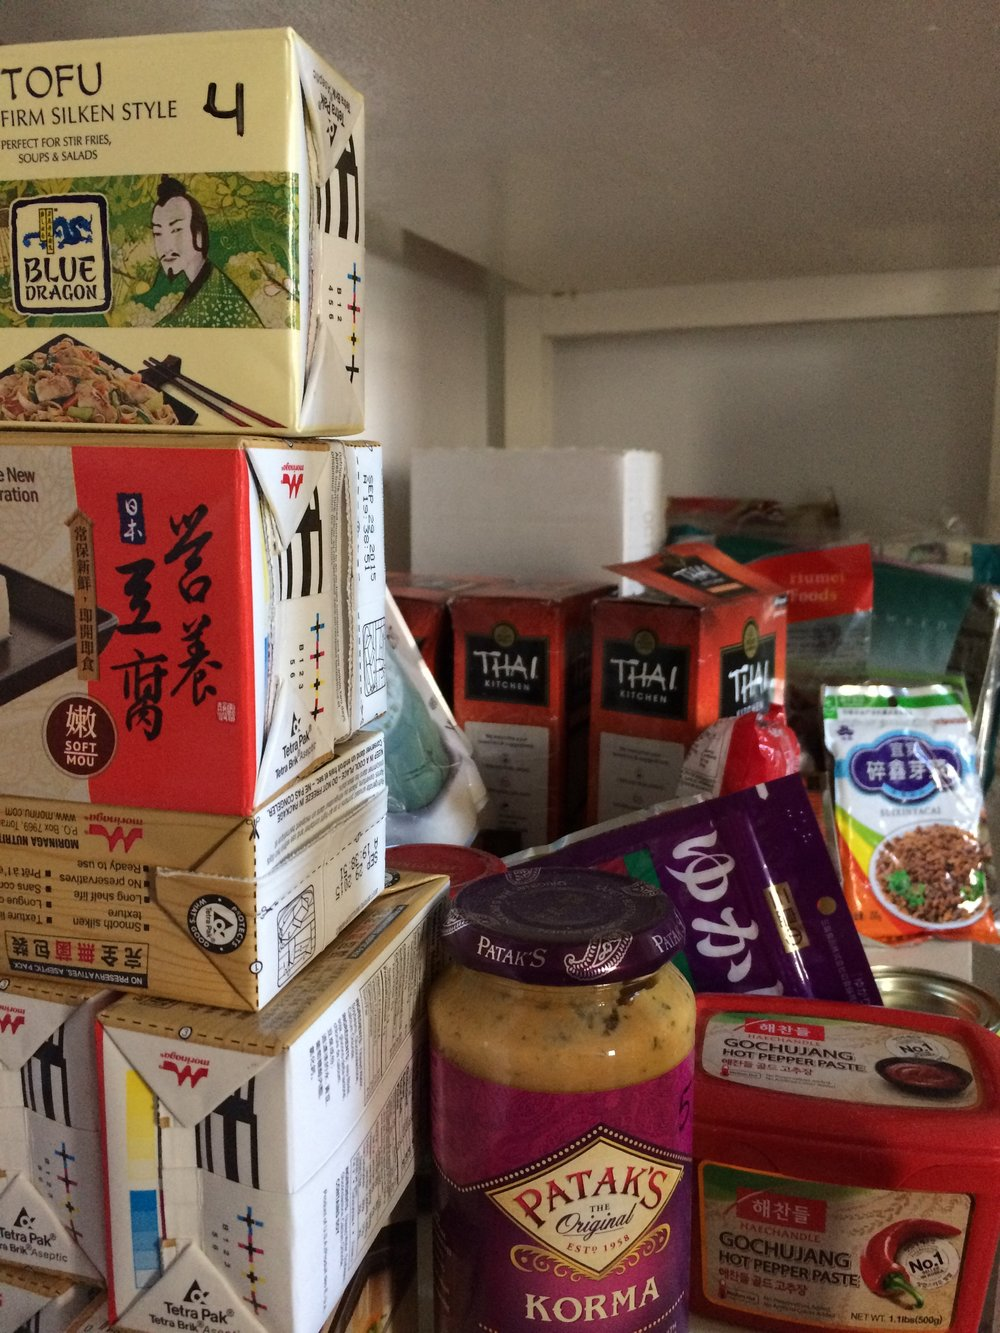 The very messy Asian section of my pantry. Except for the tofu, it wouldn't help much if we lost power and couldn't cook.